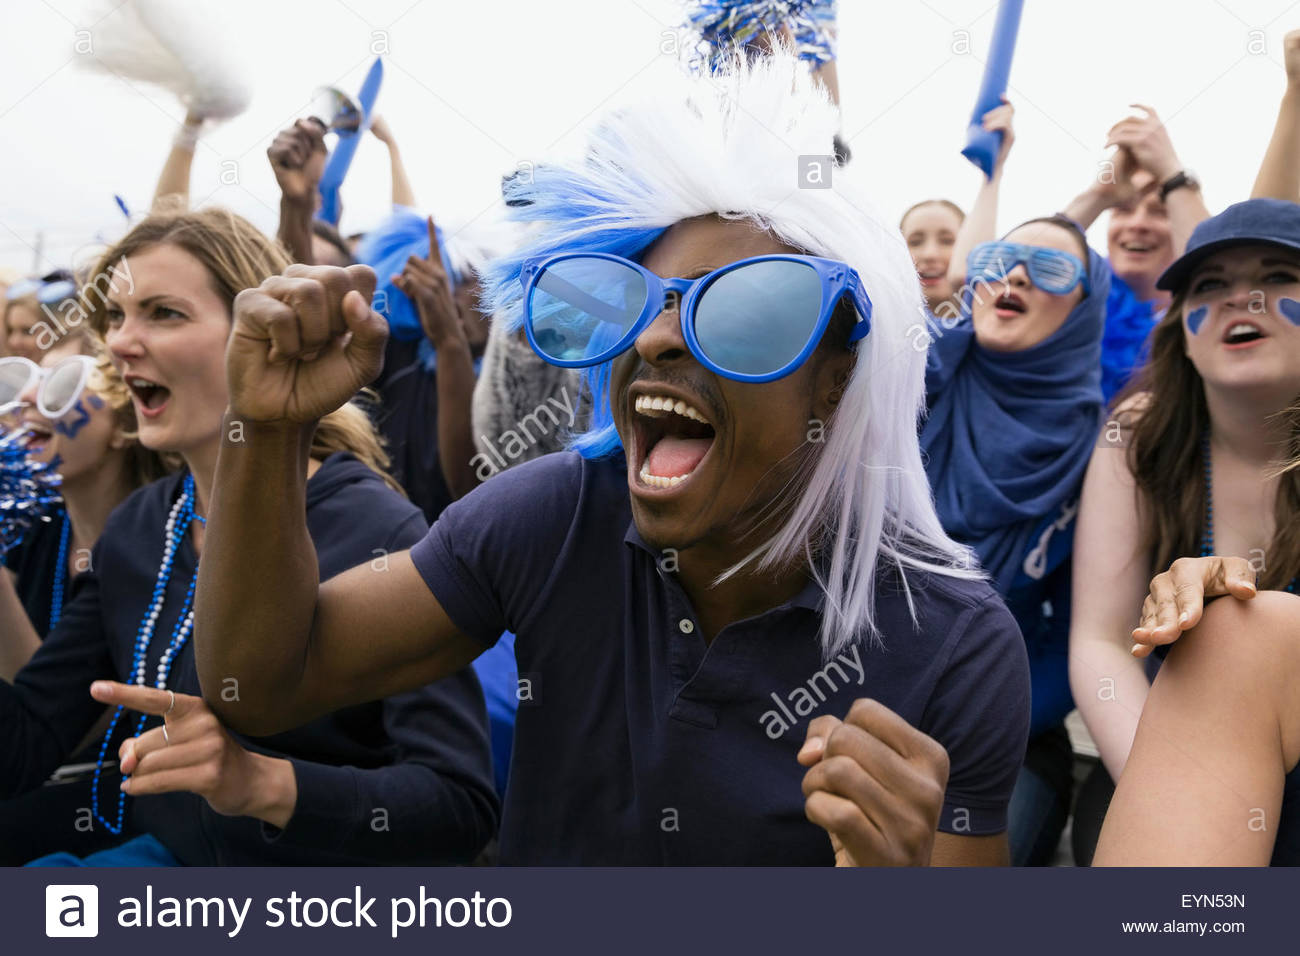 Enthusiastic fan in oversized blue sunglasses cheering - Stock Image